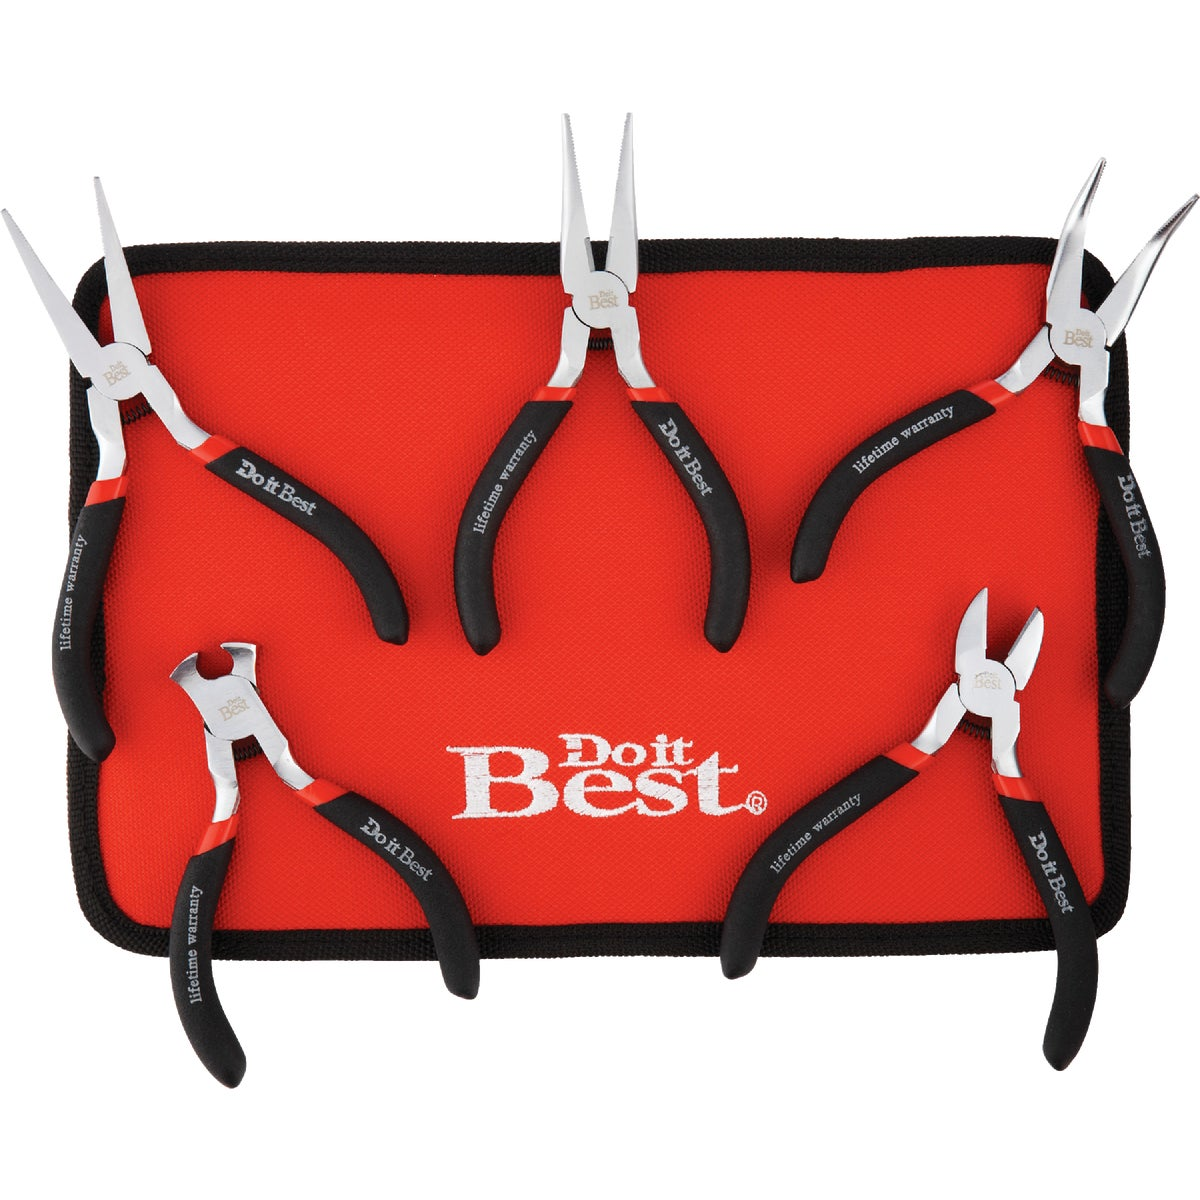 5PC HOBBY PLIERS SET - 306428 by Do it Best